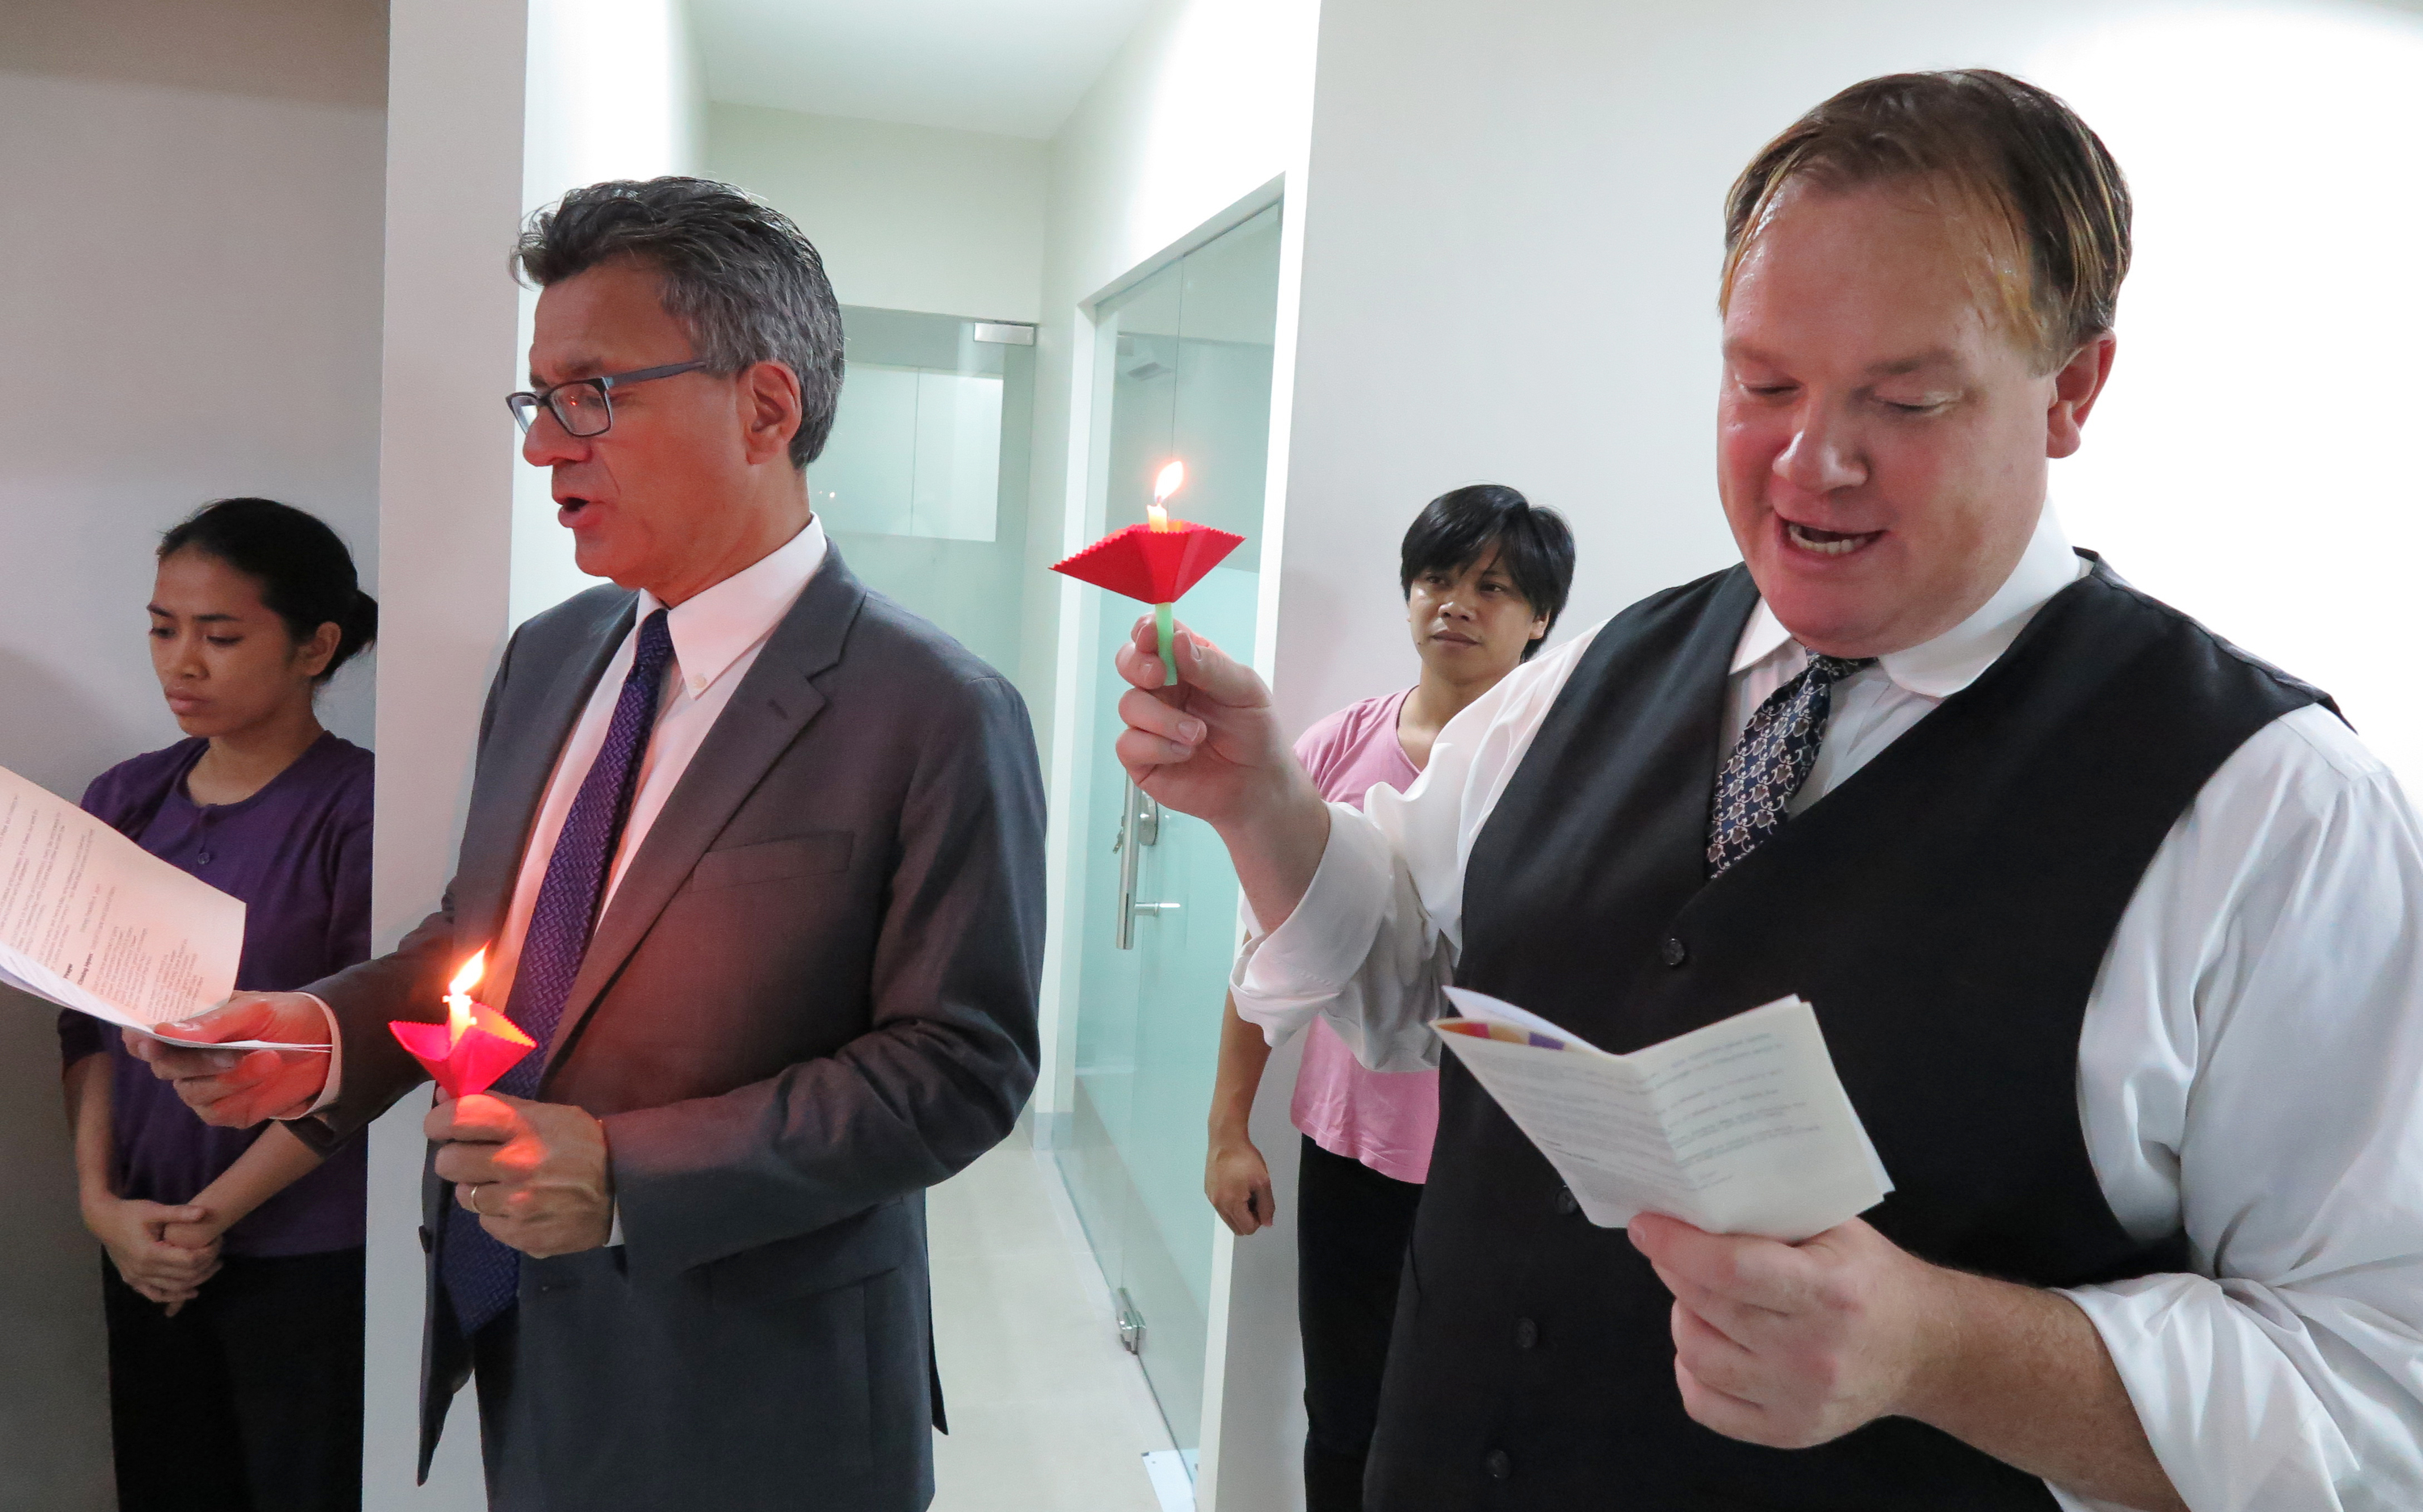 General secretaries Thomas Kemper from Global Ministries and Dan Krause from United Methodist Communications participate in a litany during the dedication ceremony of the new Manila Agency Center. Photo by Tim Tanton, UMNS.